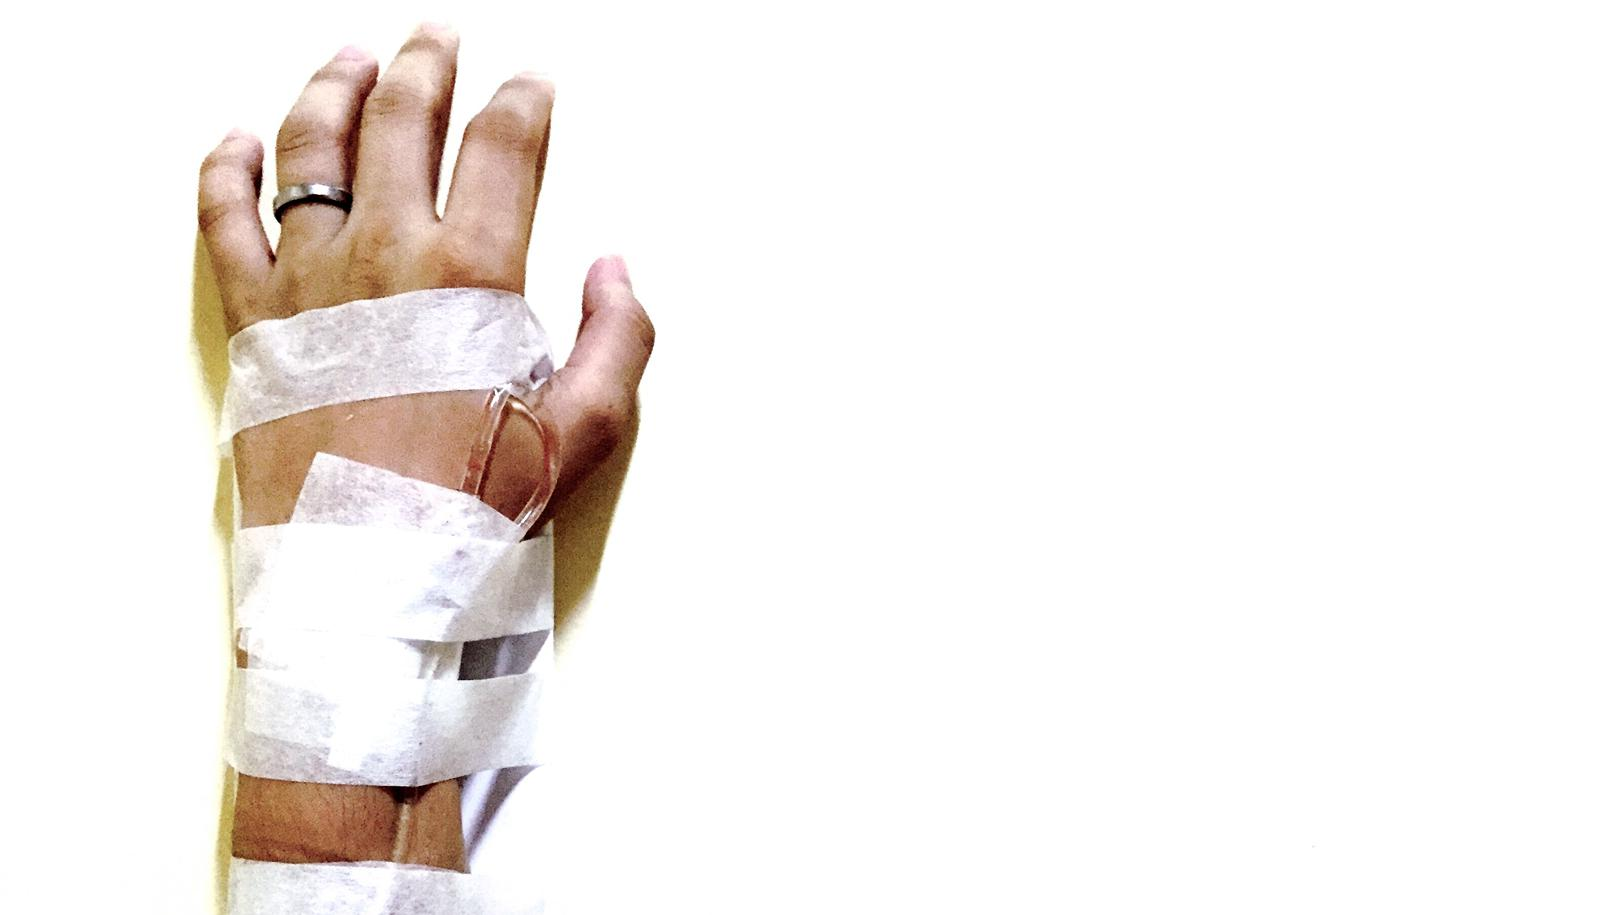 IV and tape on hand on white